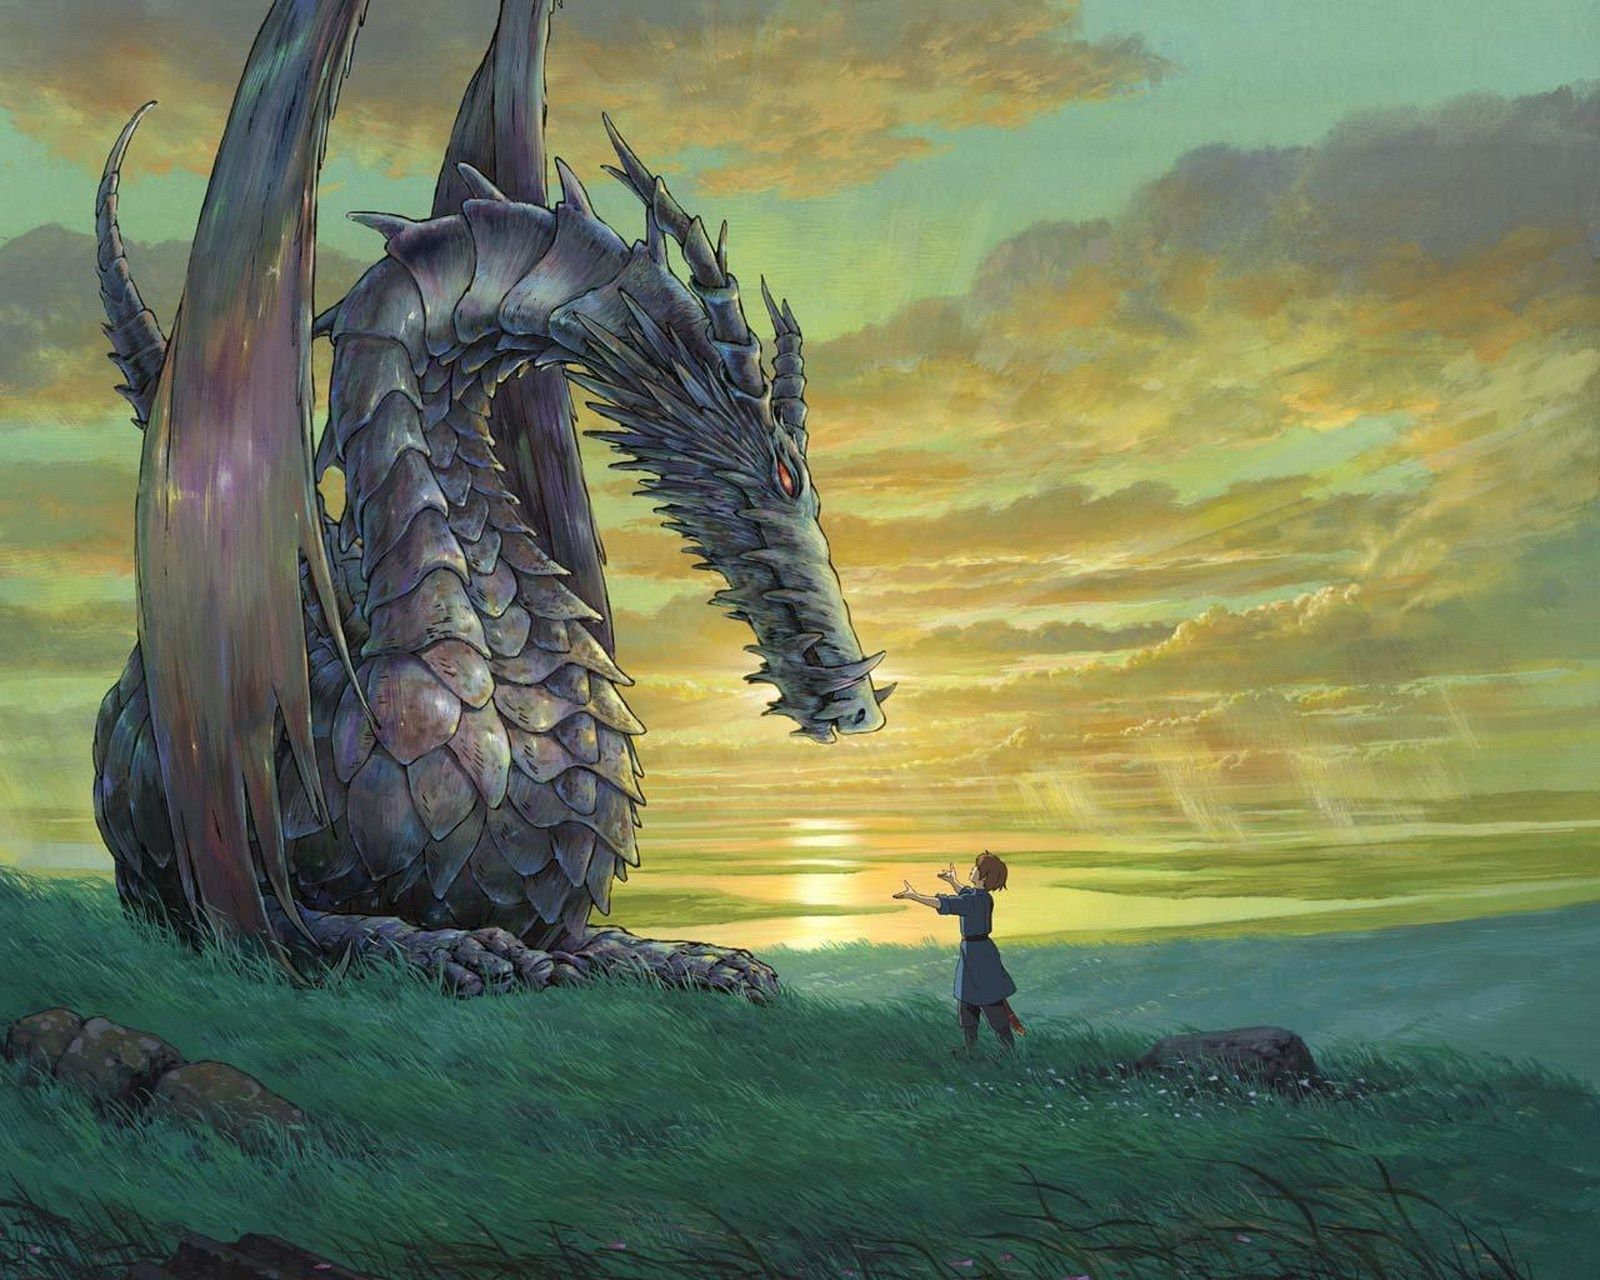 Old Friendly Dragon Wallpaper Jpg 1600 1280 Dragon Day Dragon Images Beautiful Creatures